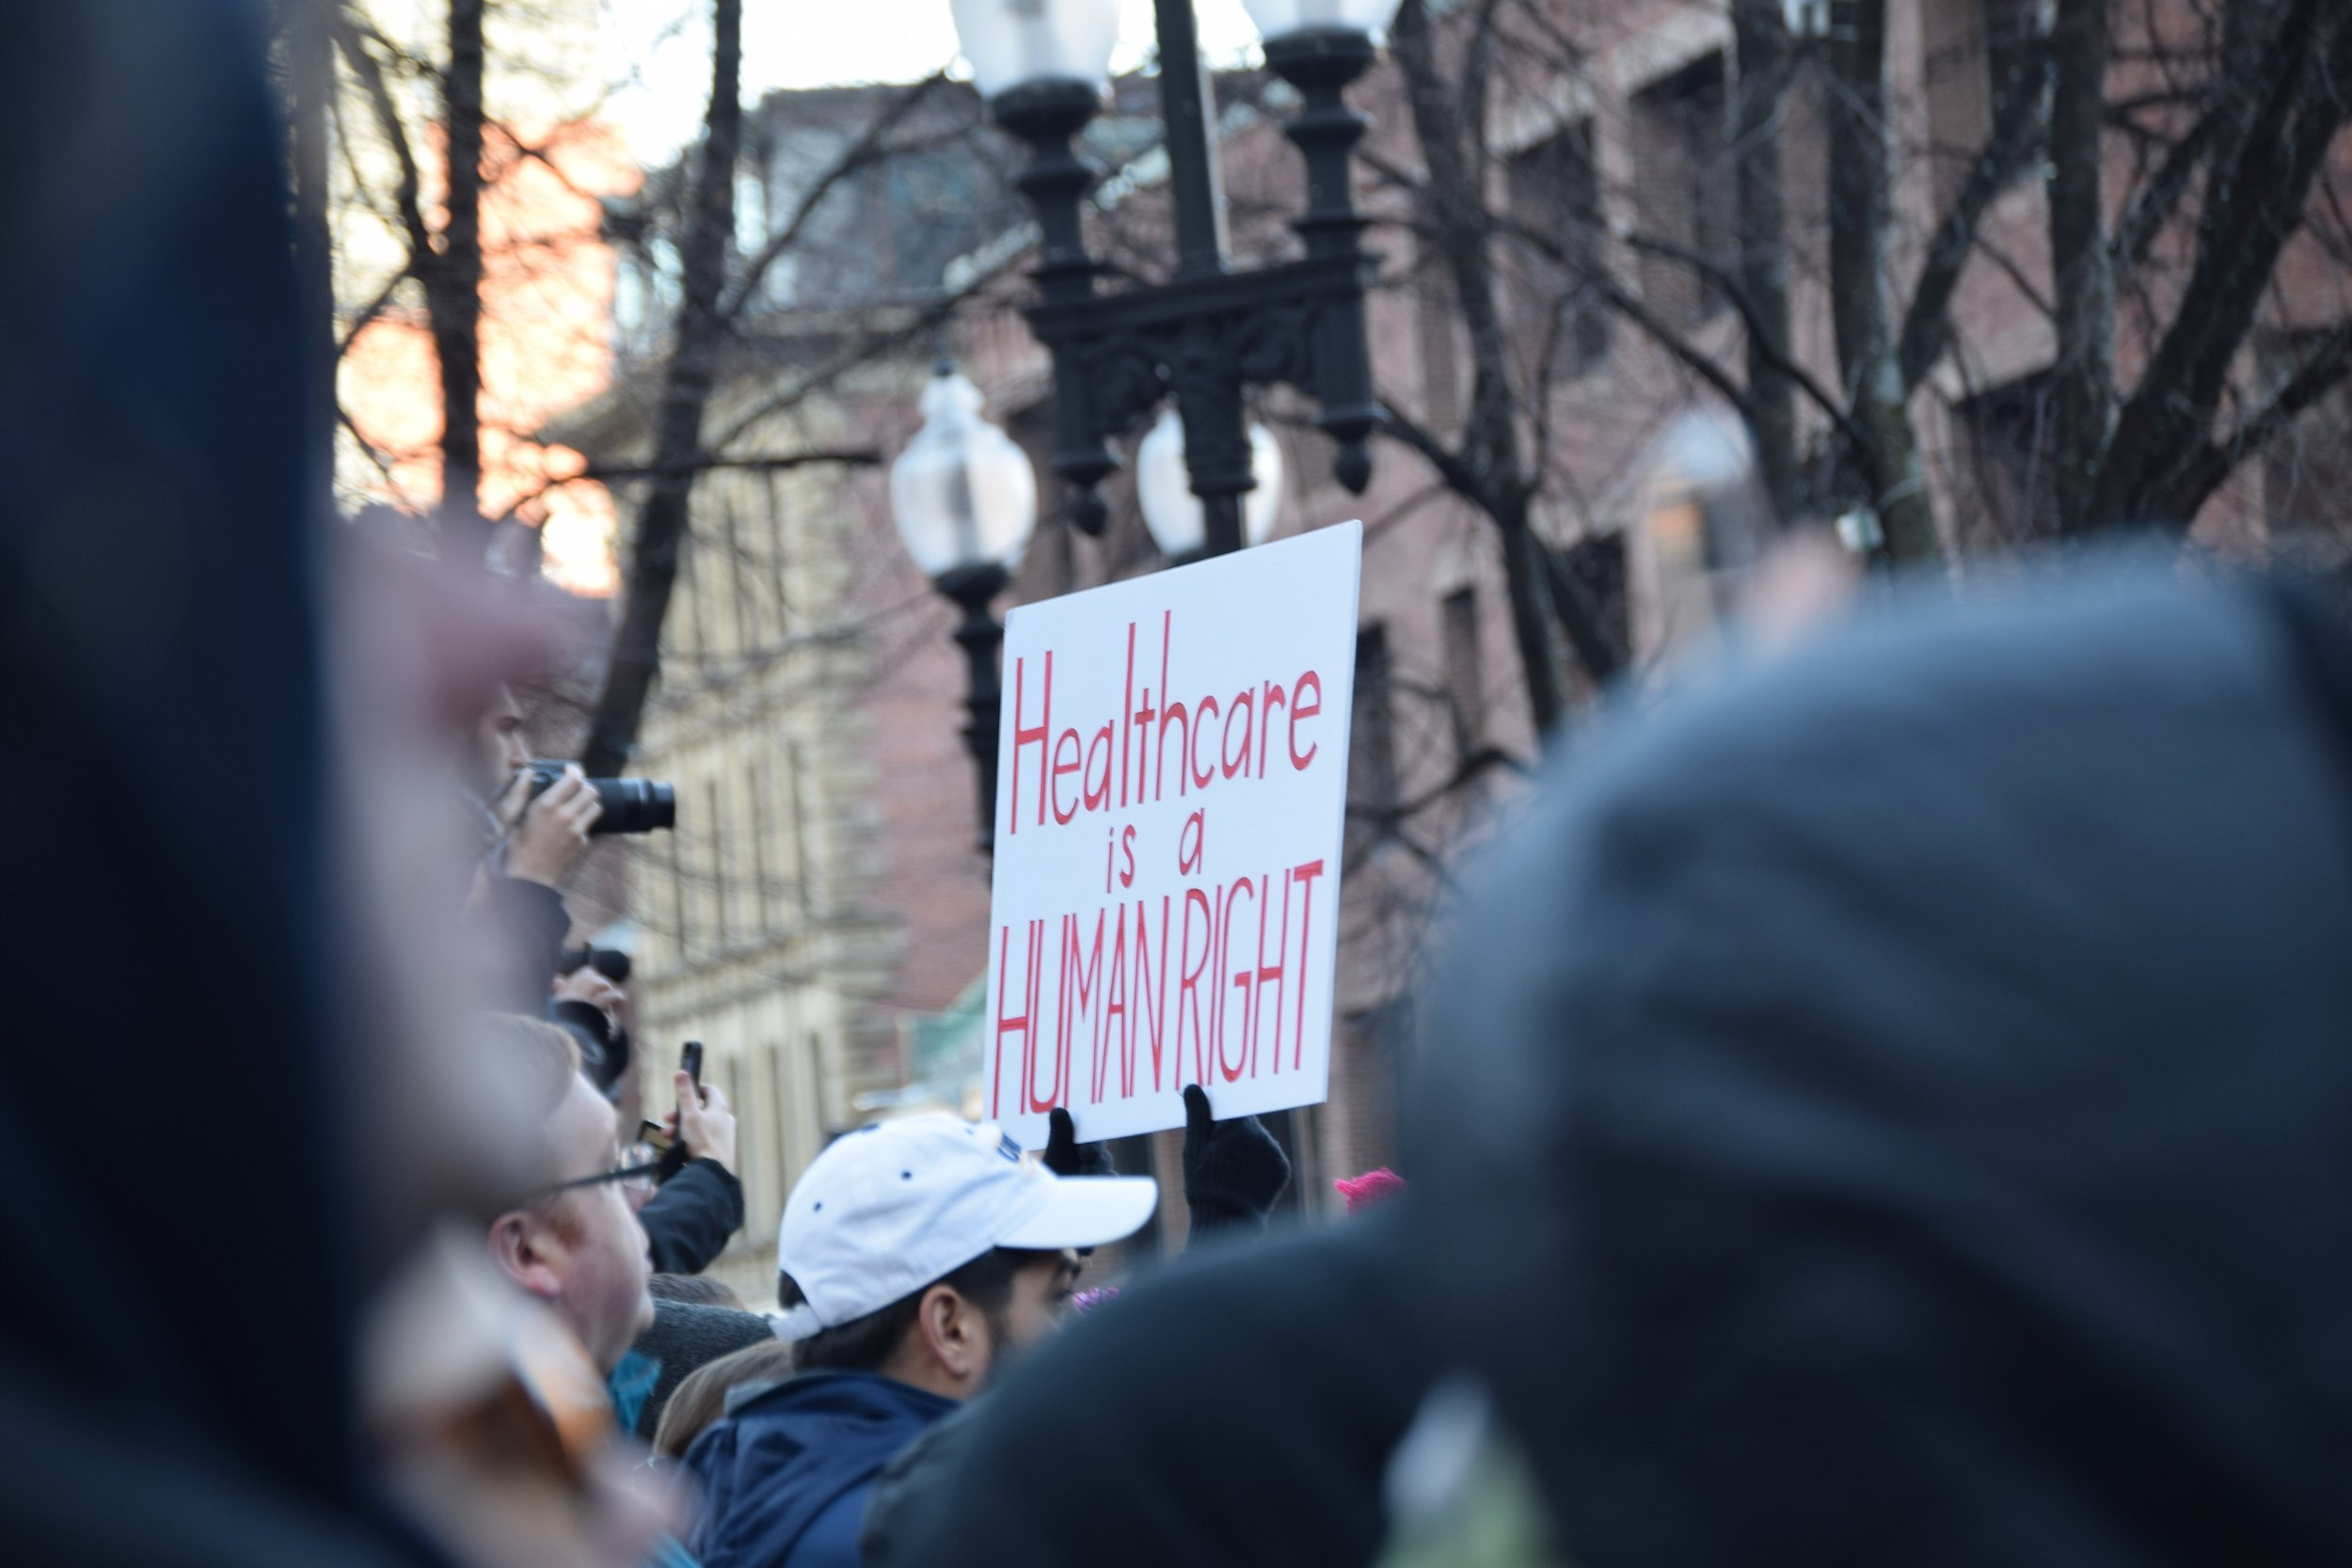 On Sunday, January 15th, 2017, an estimated six thousand people gathered in Boston's Faneuil Hall in defense of the Affordable Care Act as the Republicans in Congress and president-elect plan to remove President Obama's signature health care law.